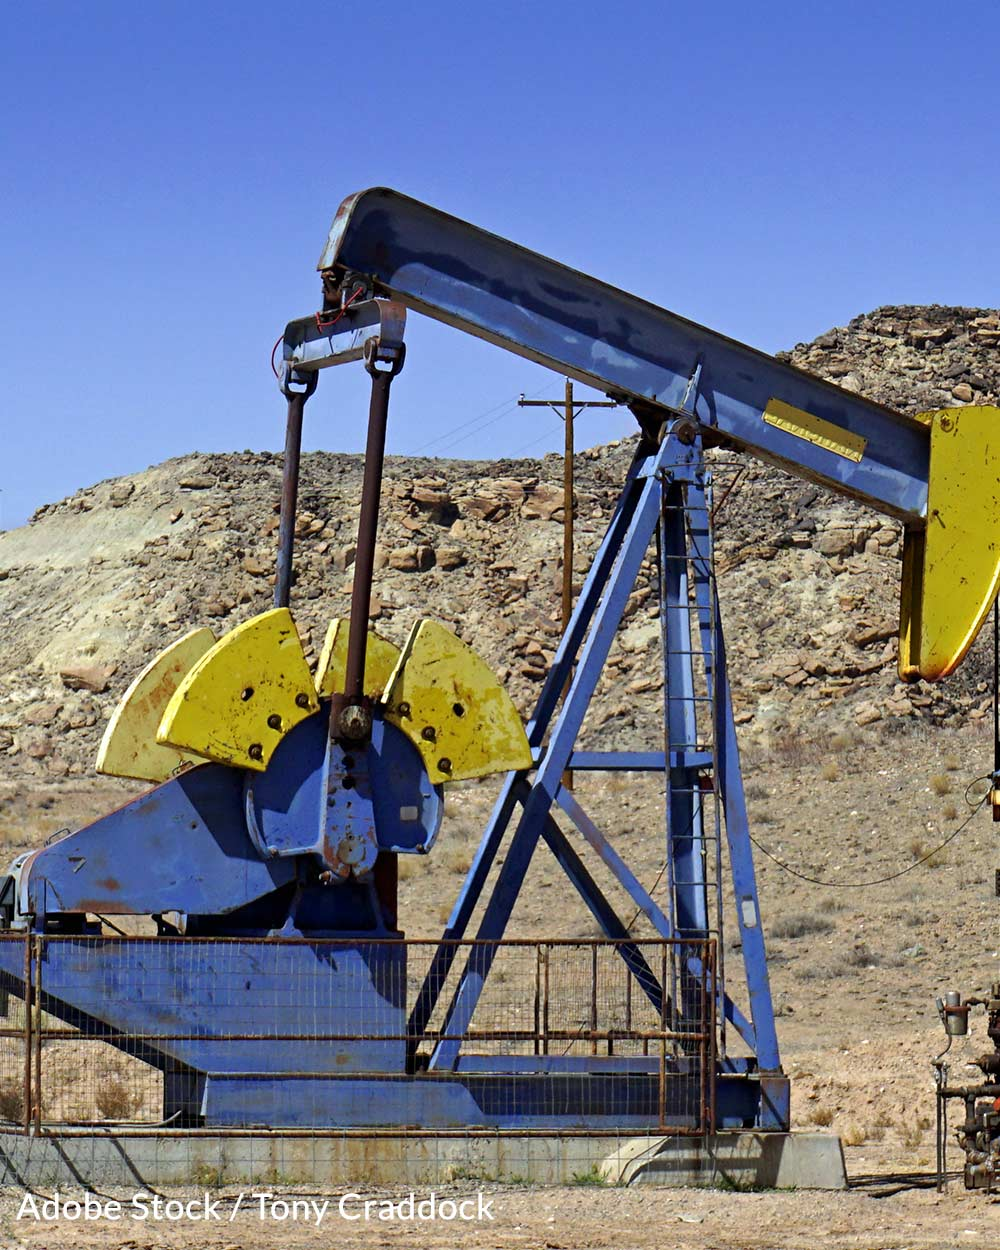 Many existing oil leases are not being used.